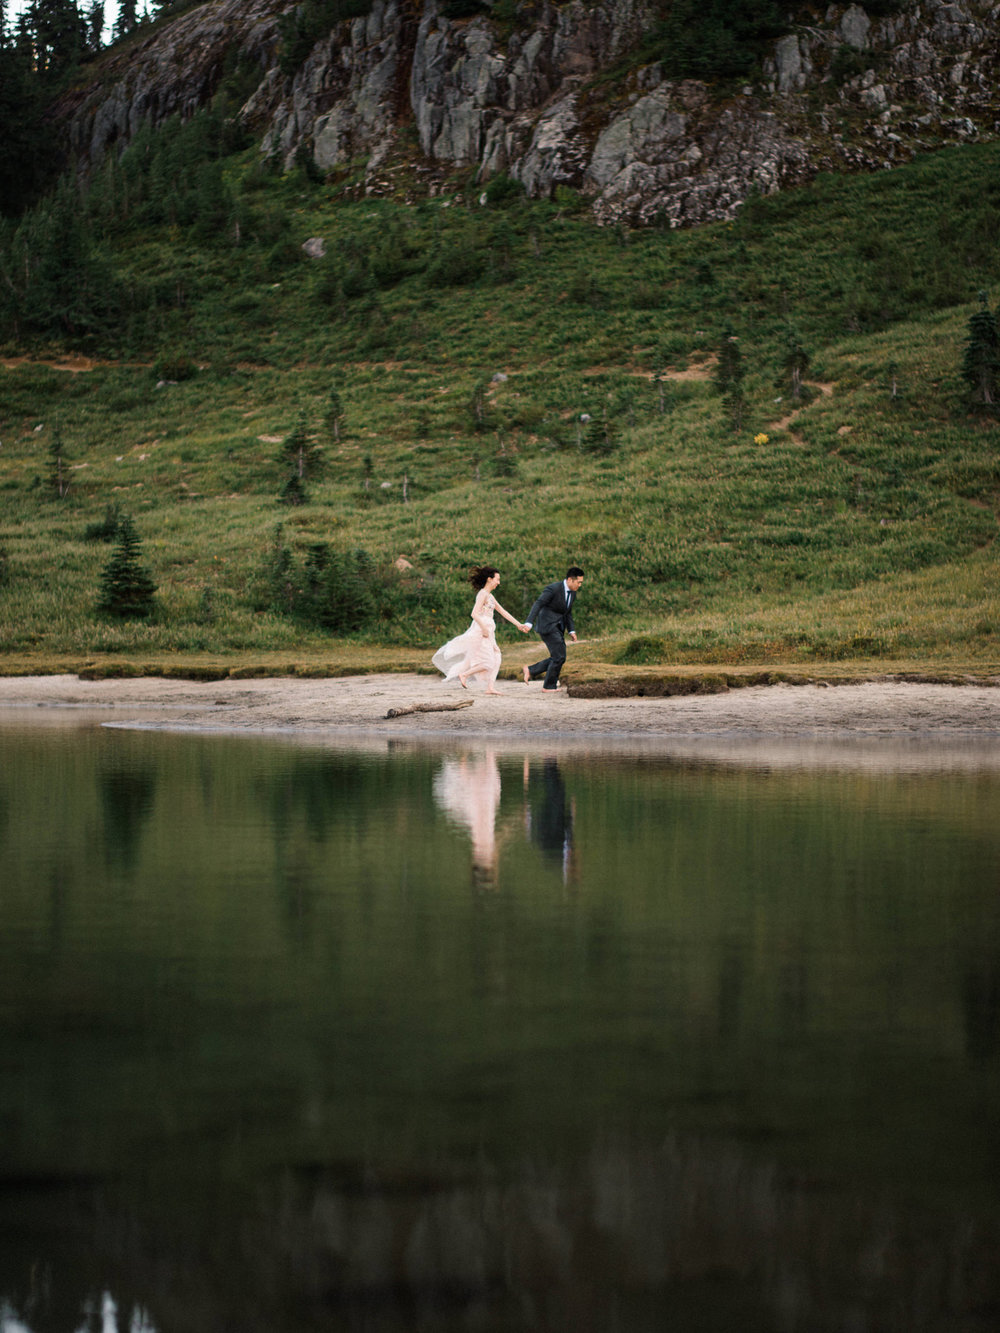 021-engagement-photo-at-mt-rainier-with-flowing-dress-by-film-photographer-ryan-flynn-photography.jpg